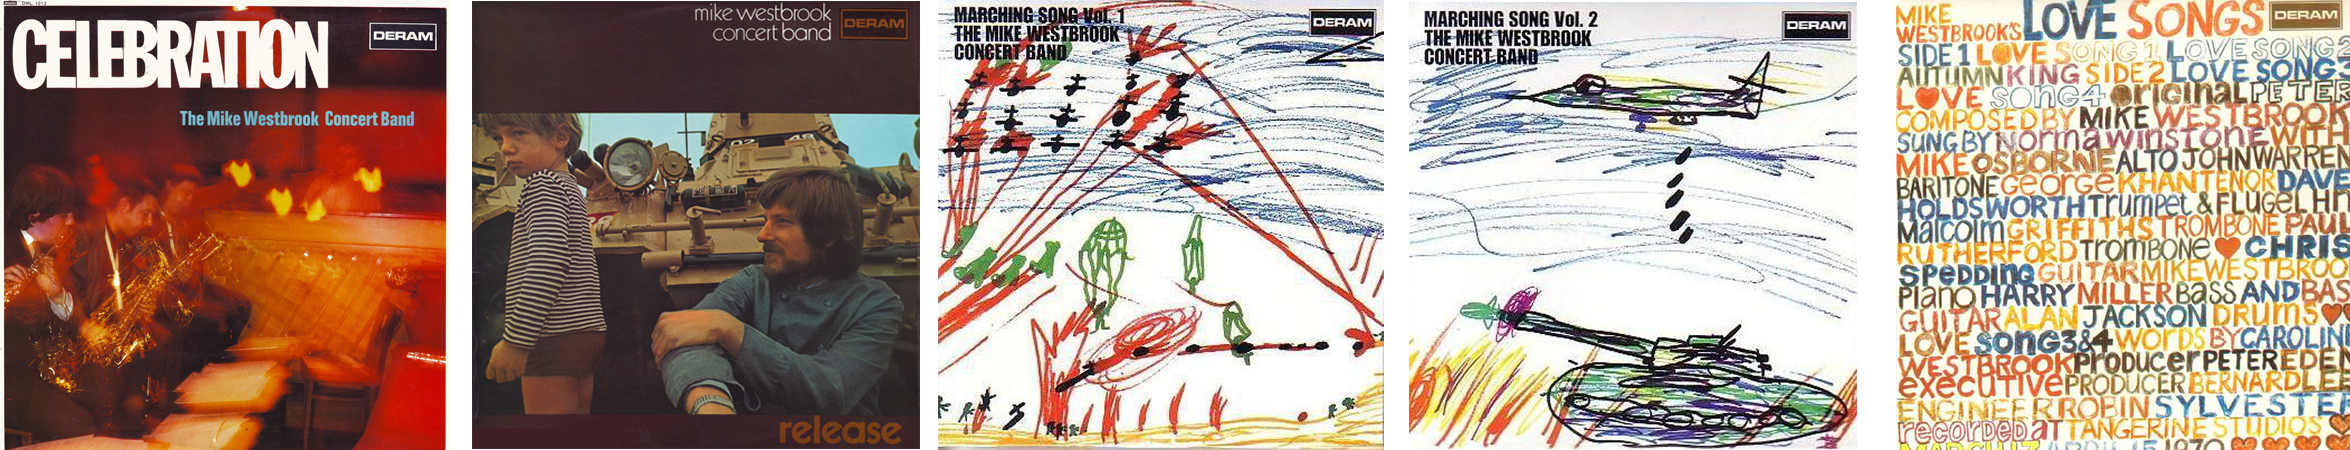 Mike Westbrook Concert Band: Marching Song/ Vol1 (1969) Deram